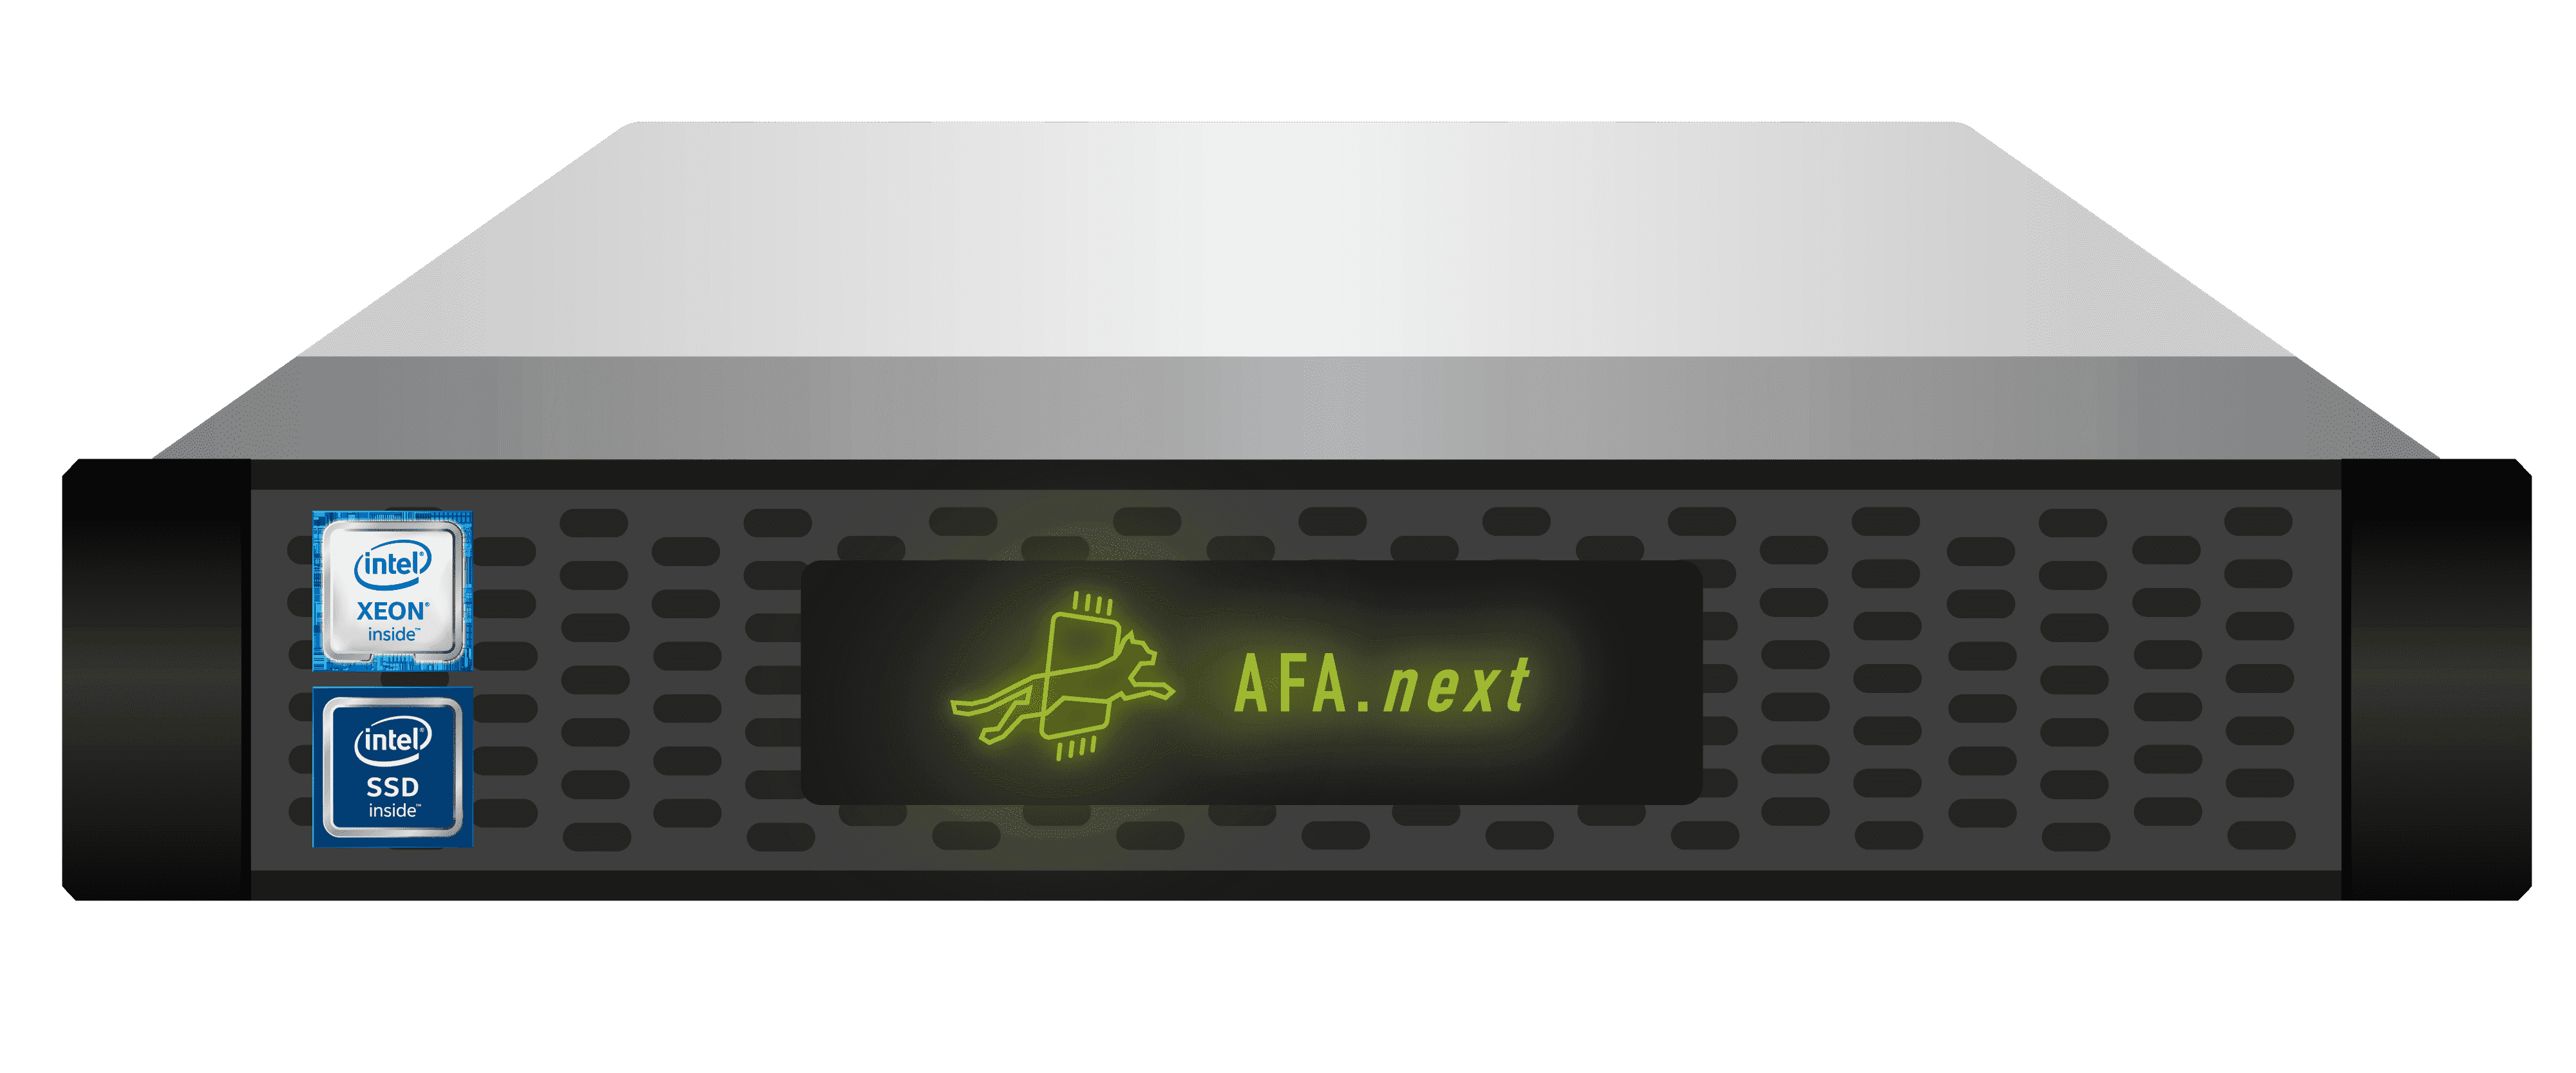 #164 – Introduction to StorONE S1: All-Flash Array.next with George Crump (Sponsored)